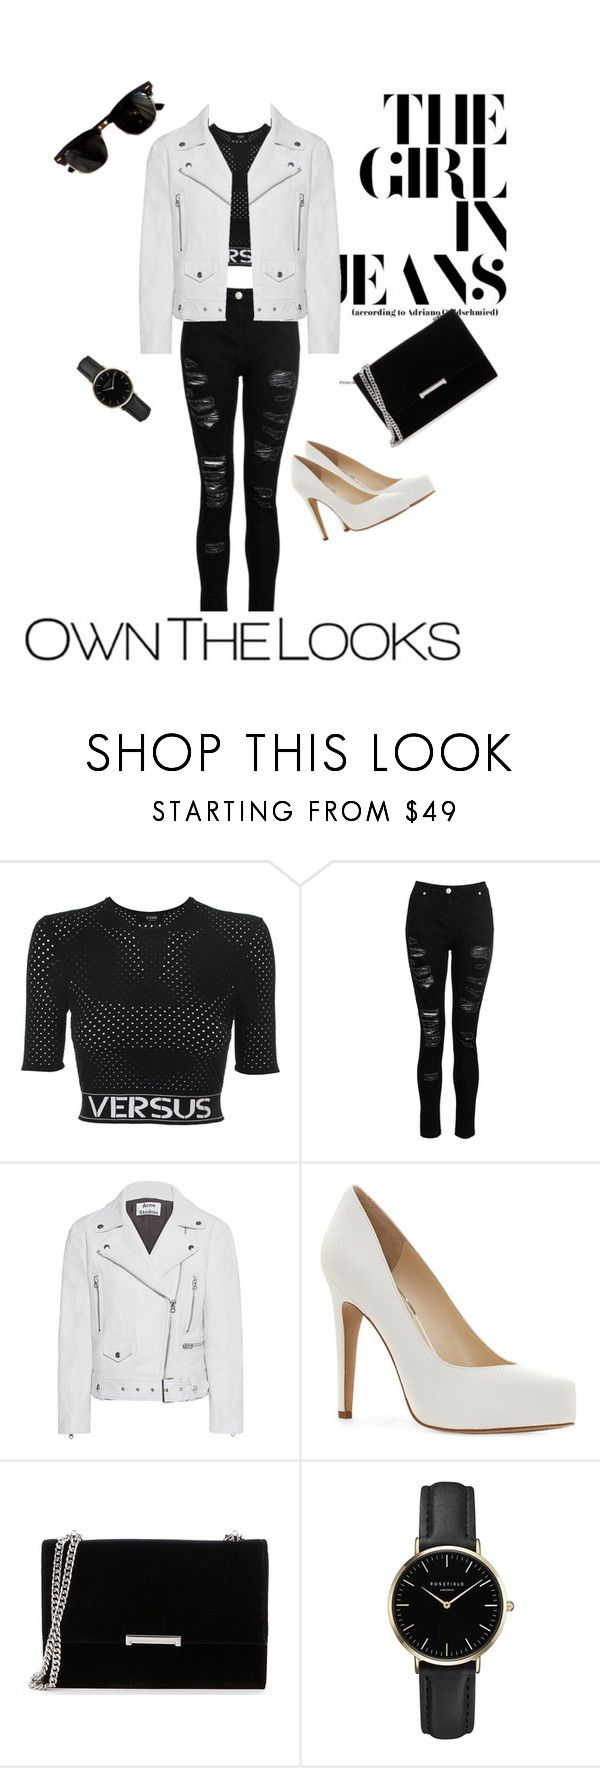 """""""Untitled #1"""" by patstemon ❤ liked on Polyvore featuring Versus, Ray-Ban, Dorothy Perkins, Acne Studios, Jessica Simpson, Ivanka Trump and ROSEFIELD"""